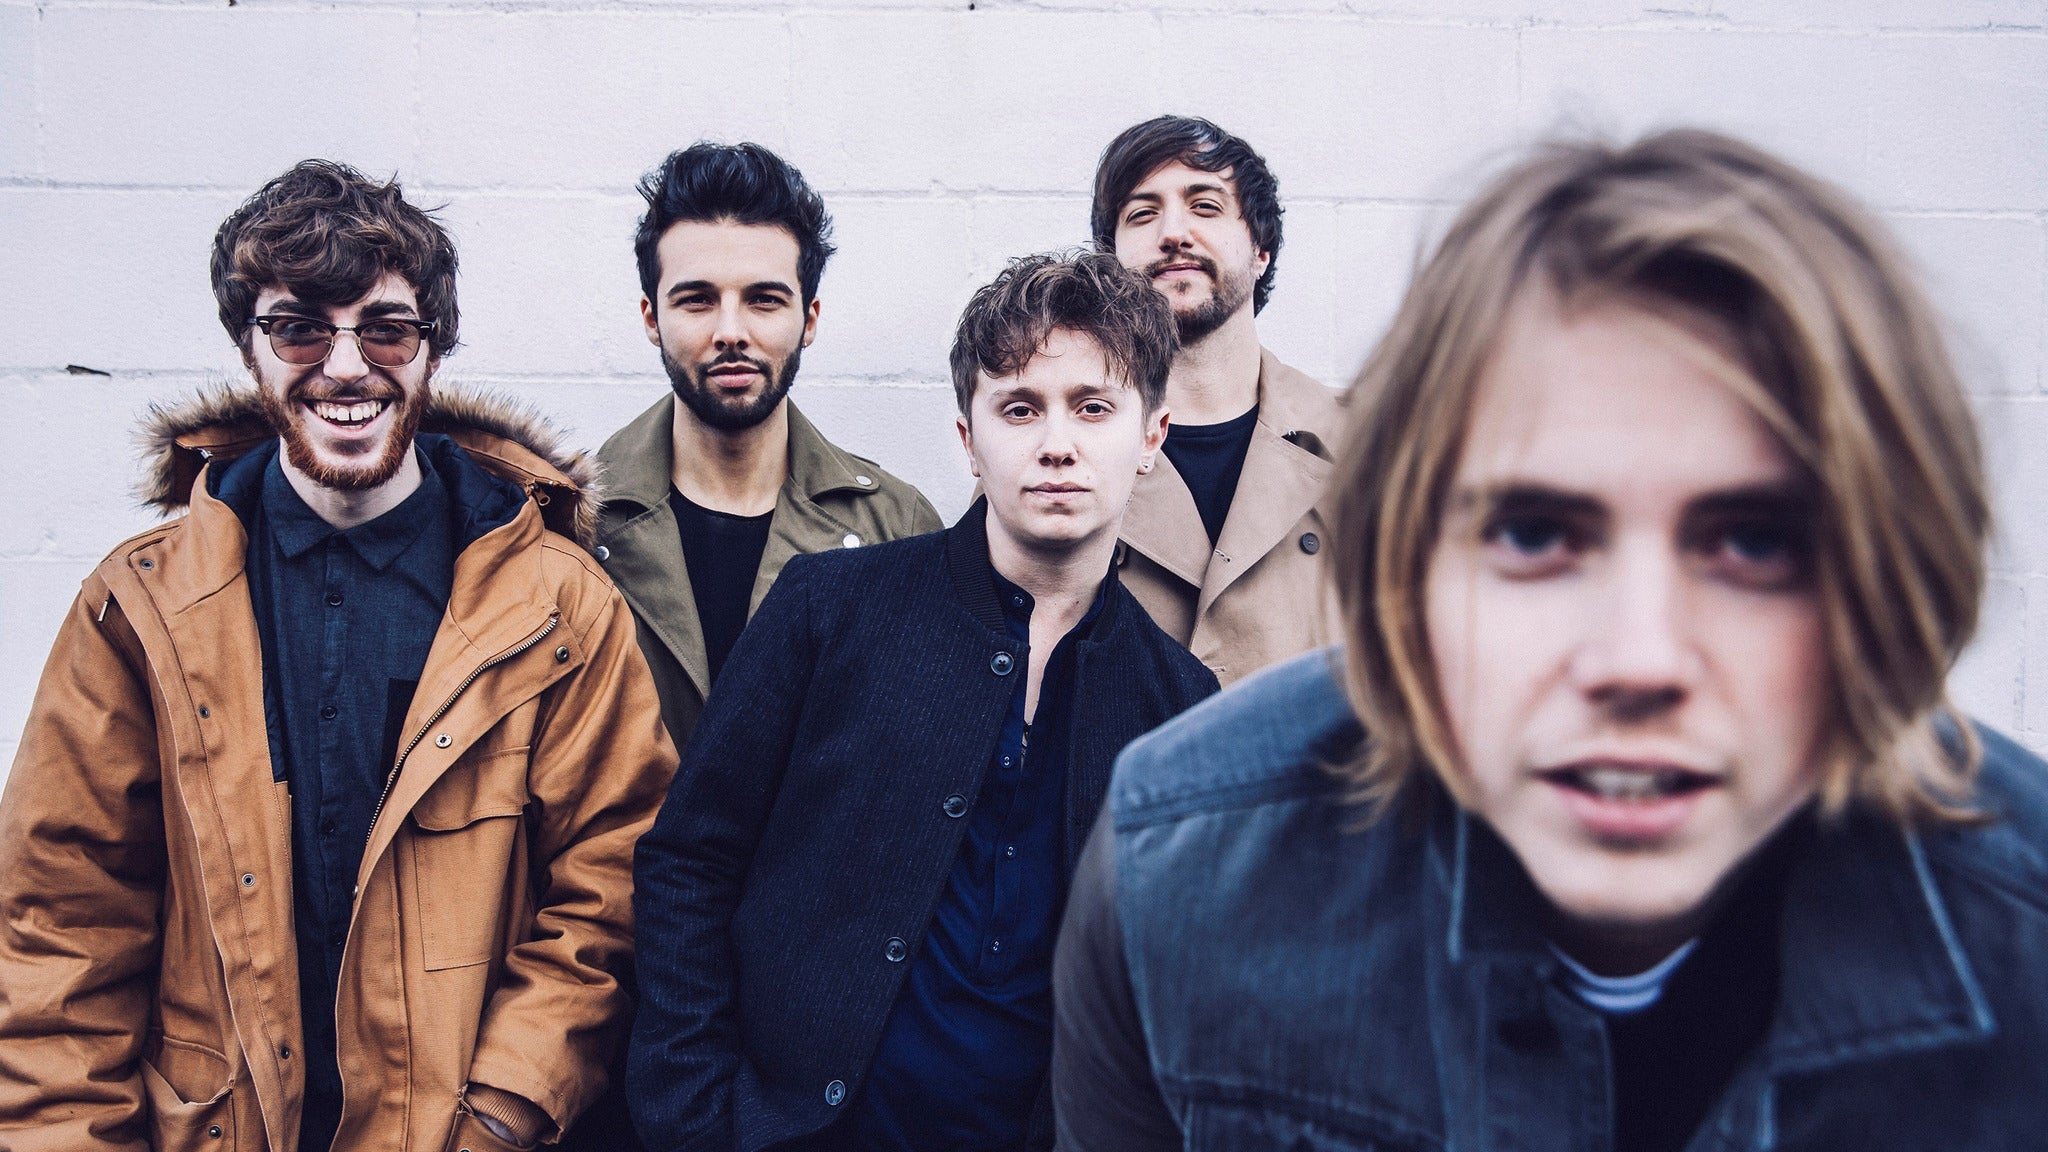 Nothing But Thieves presented by Ones To Watch